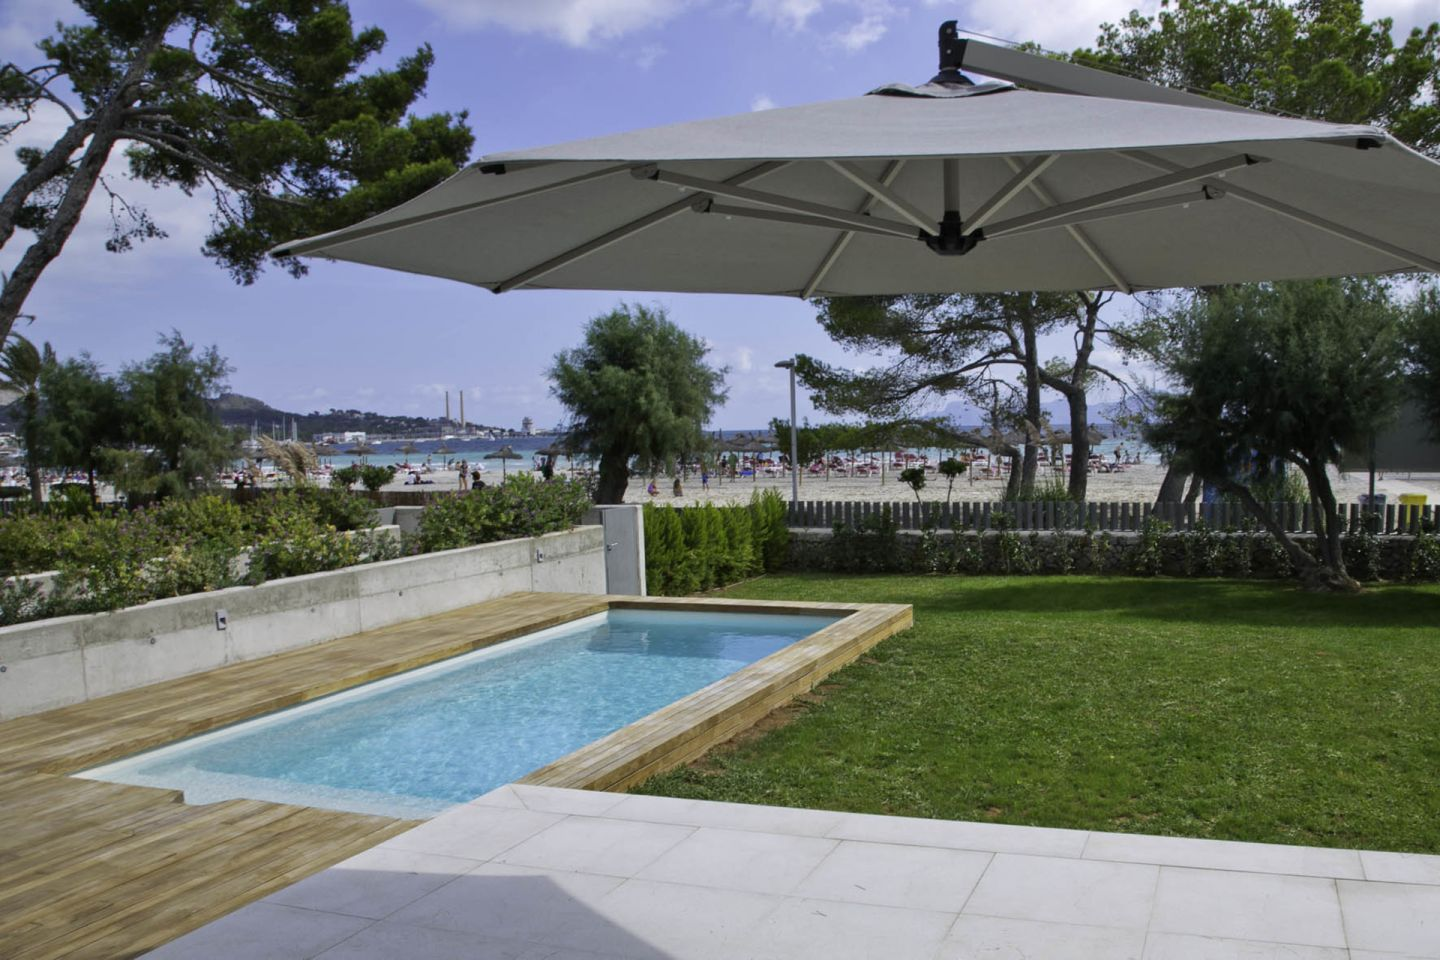 3 Bed Ground Floor for sale in ALCUDIA 0